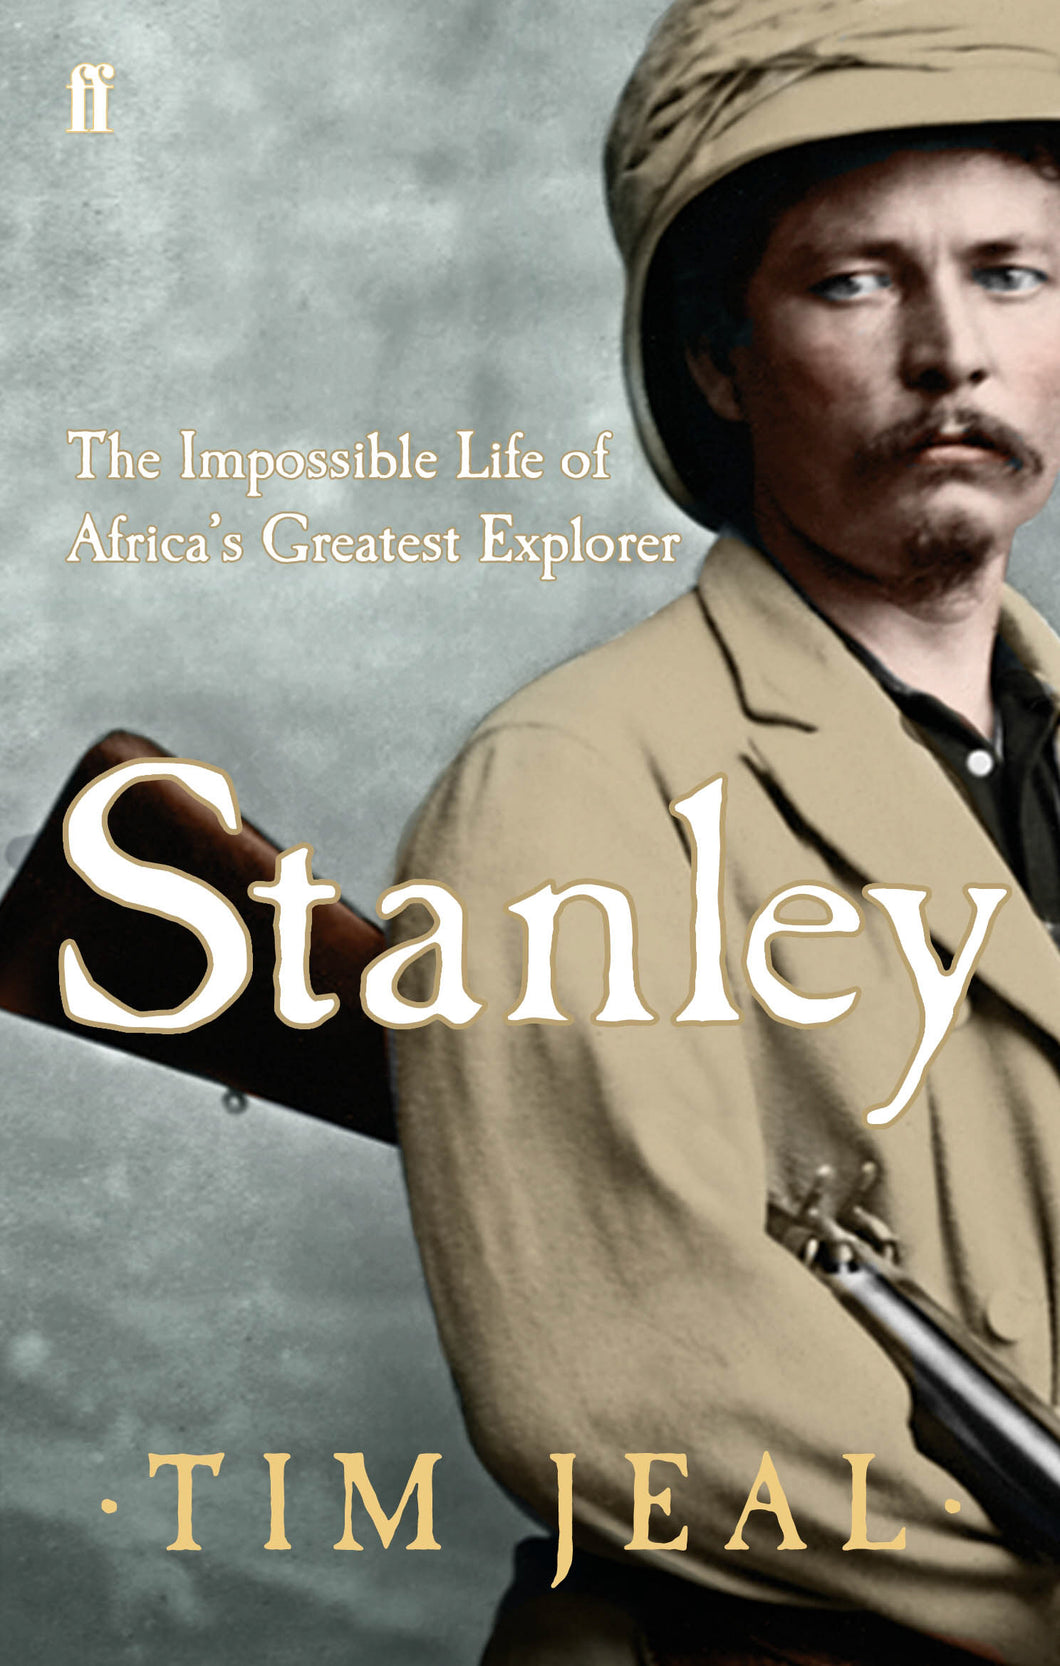 Stanley-The Impossible Life of Africa's Greatest Explorer